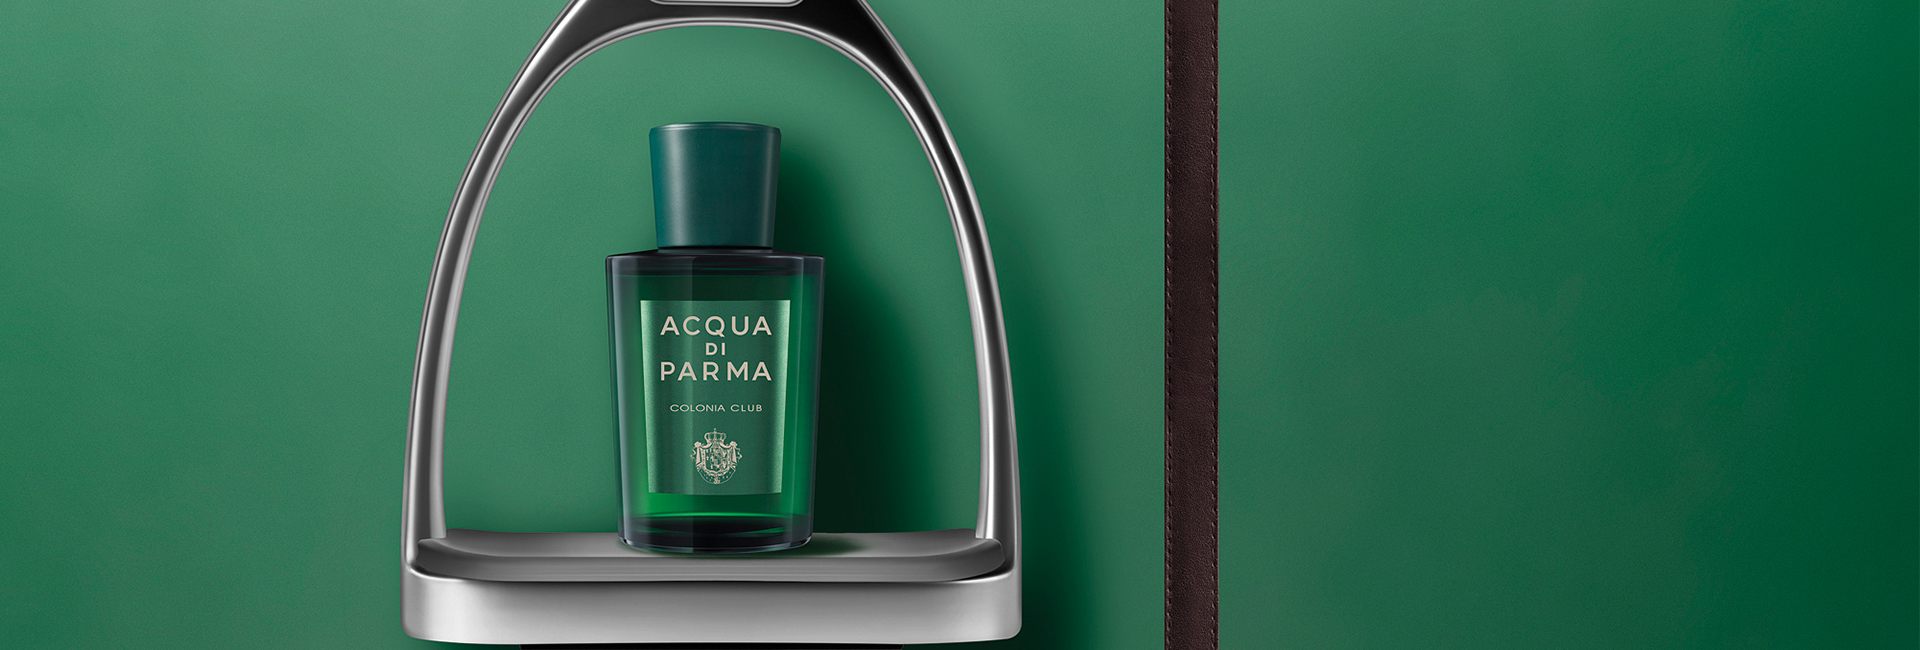 « Colonia Club » d'Acqua di Parma